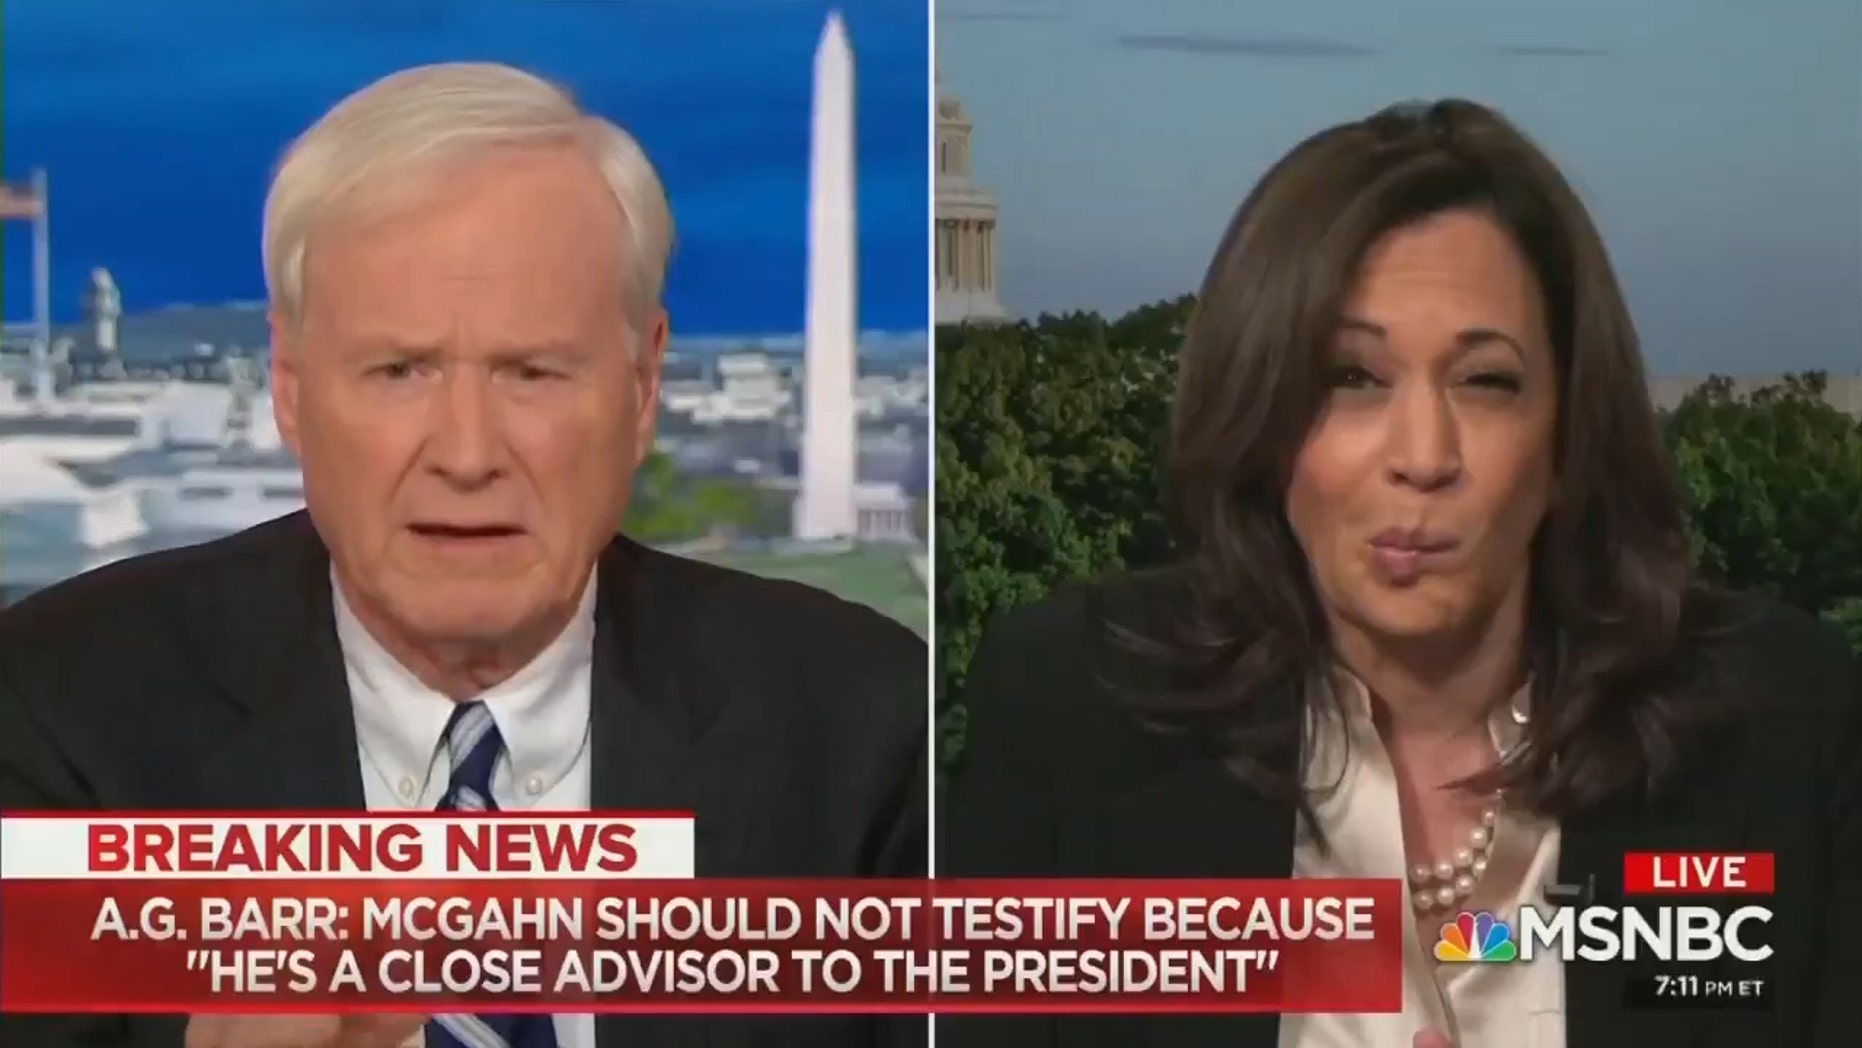 Westlake Legal Group harris-matthews MSNBC's Chris Matthews forced to apologize after likening executive privilege to losing virginity Lukas Mikelionis fox-news/person/kamala-harris fox-news/news-events/russia-investigation fox-news/entertainment/media fox news fnc/entertainment fnc article 91840d41-9f4f-50be-b18f-f8845e330f02